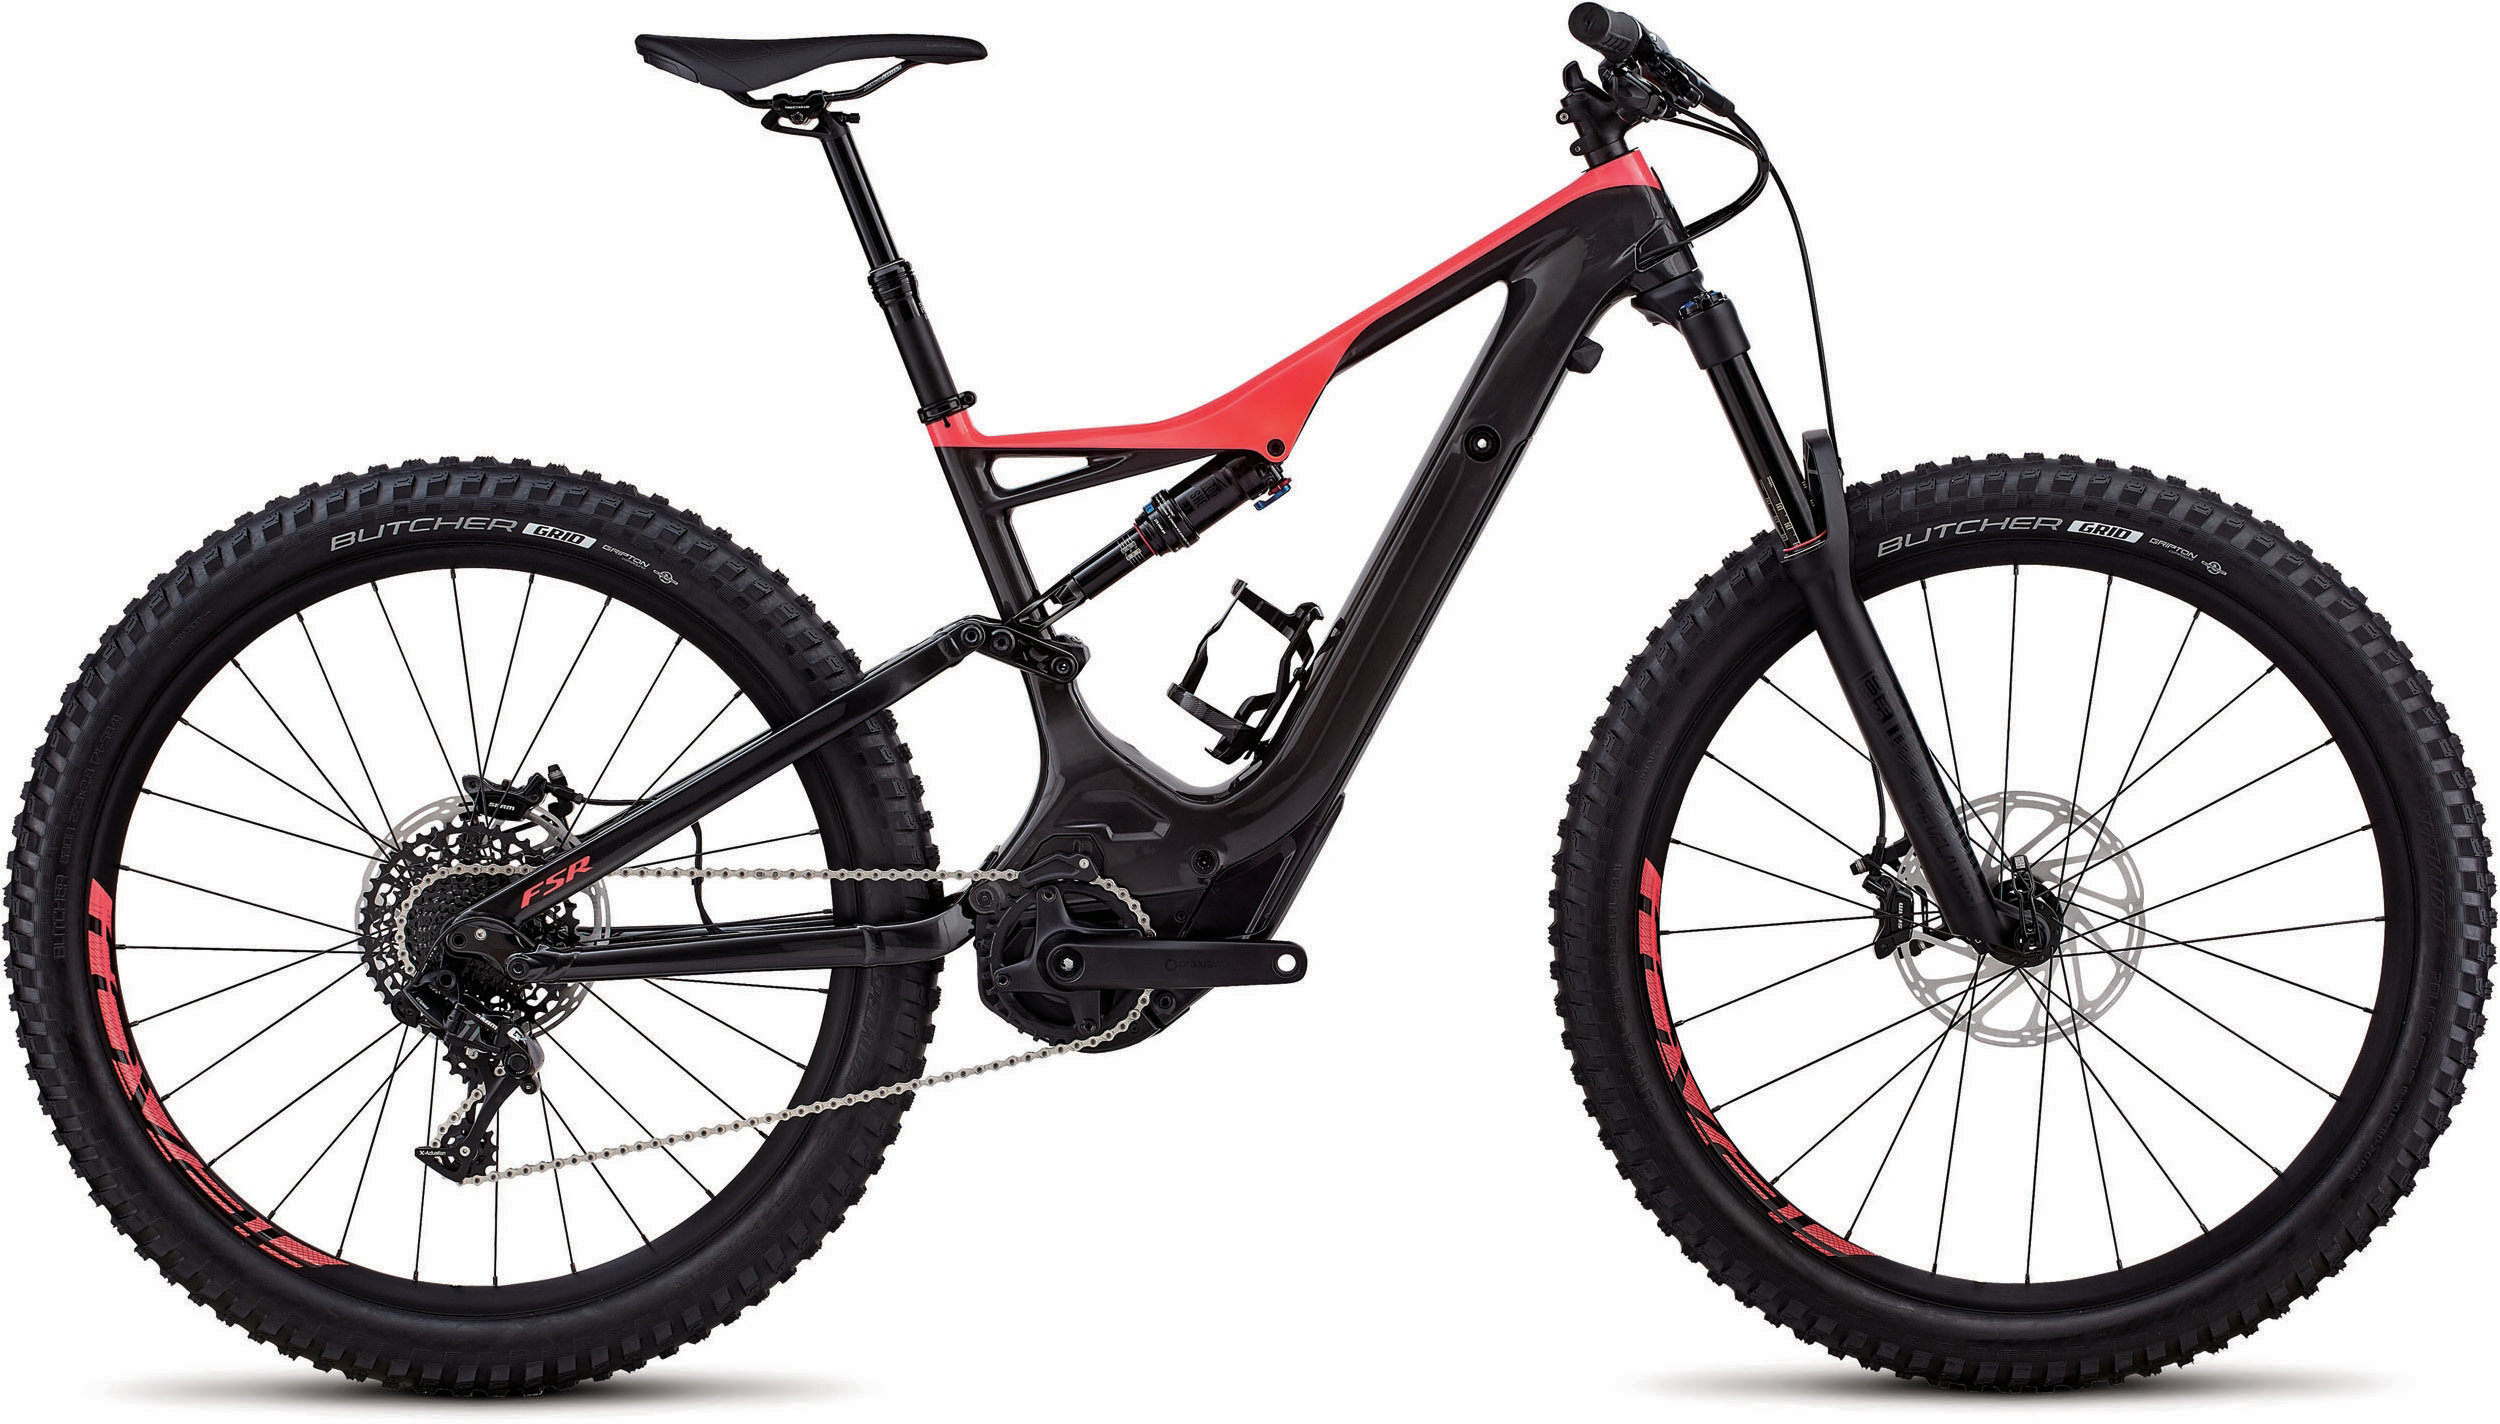 Specialized Men´s Turbo Levo FSR Comp Carbon 6Fattie/29 Gloss Carbon / Acid Red M - Specialized Men´s Turbo Levo FSR Comp Carbon 6Fattie/29 Gloss Carbon / Acid Red M